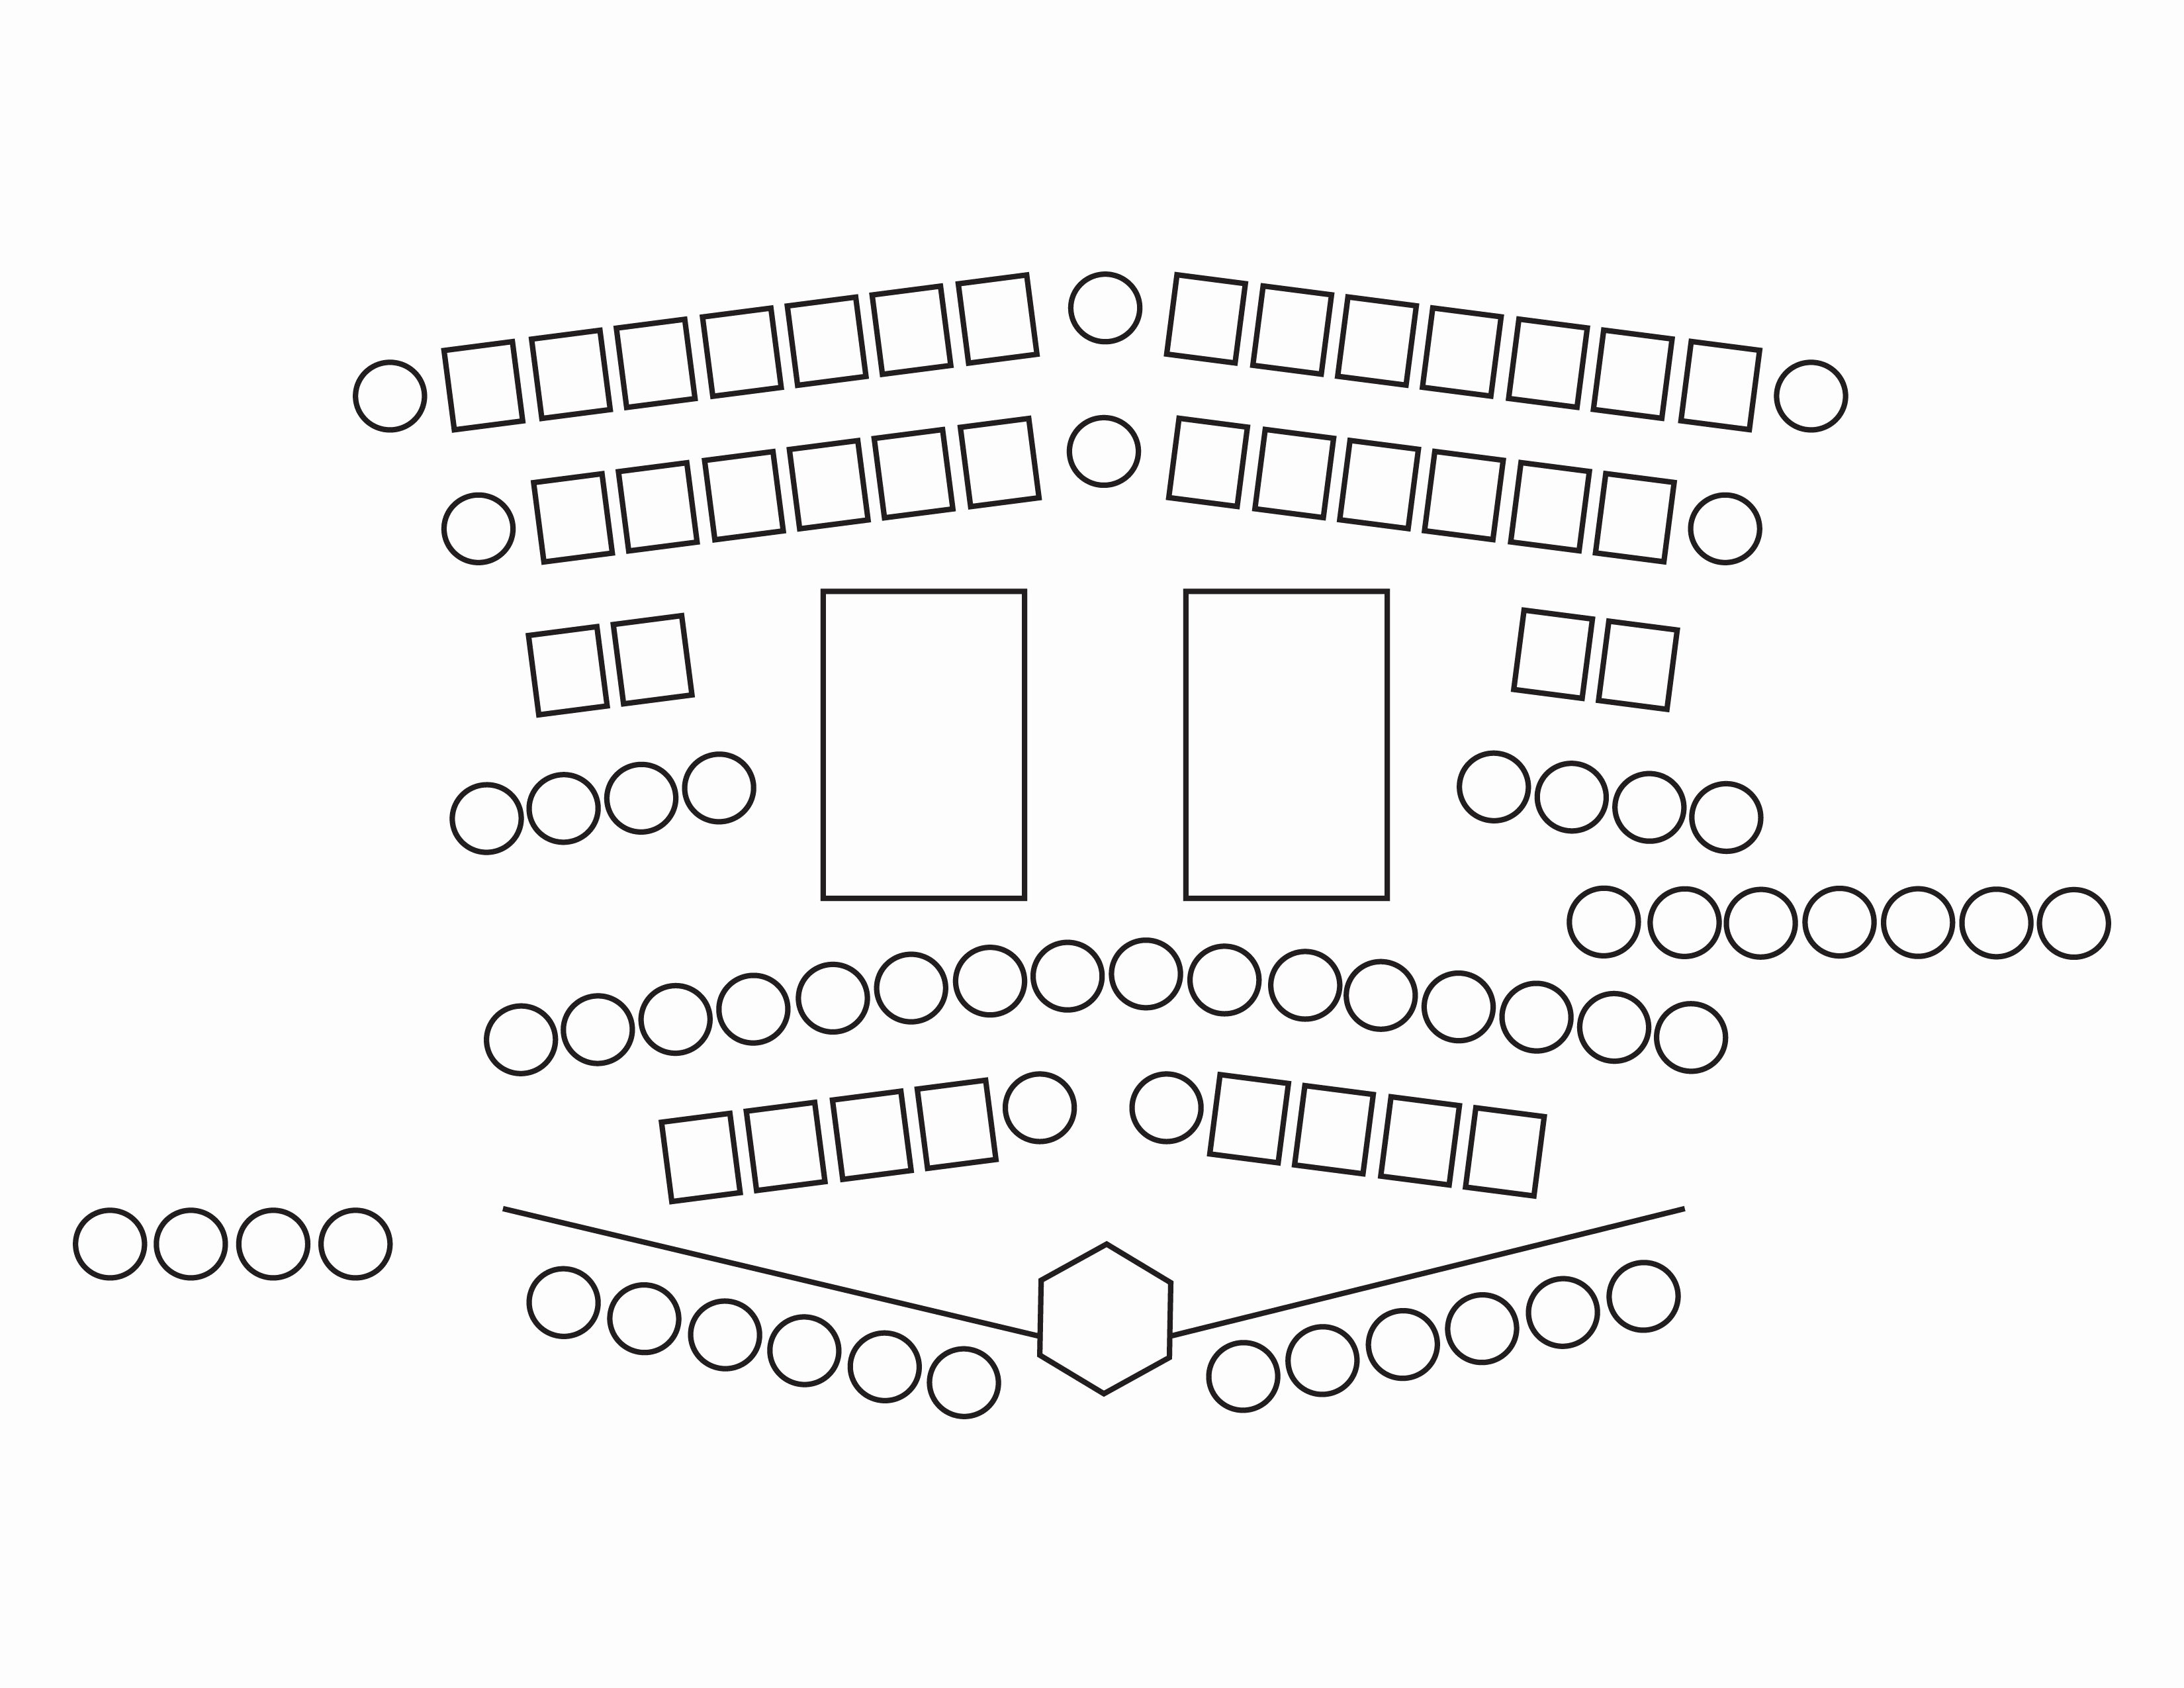 Church Seating Chart Template Inspirational How to Prepare the Best Primary Program Ever – the Gospel Home